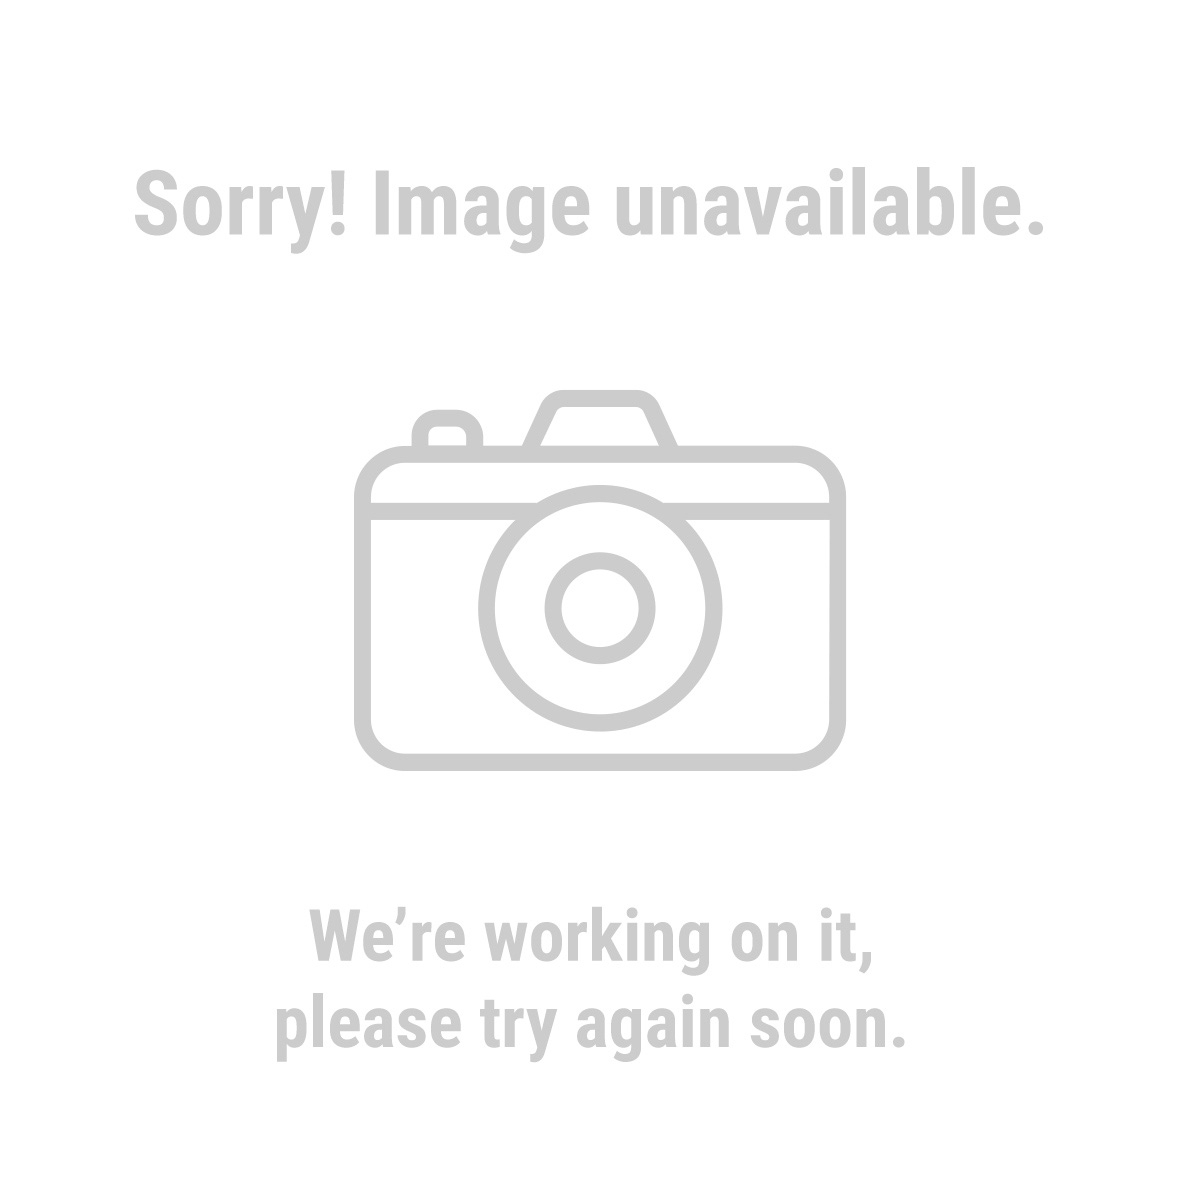 Drill Master 93077 Pack of 10 High Speed Steel Titanium Nitride Drill Bits